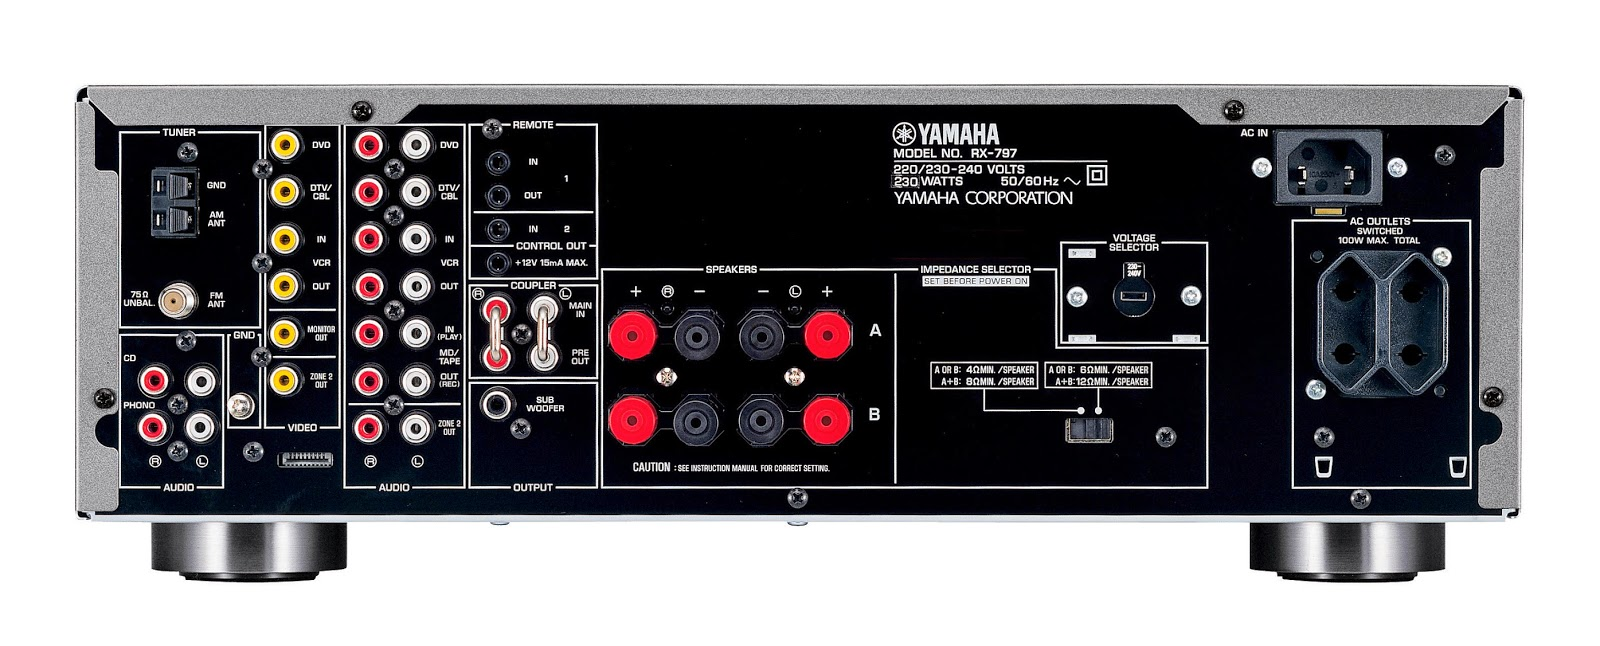 hight resolution of yamaha rx v340 service manual download free wrg 7488 whole home audio wiring diagram yamaha rx a1050 rx v359 yamaha av receivers service manual ampli